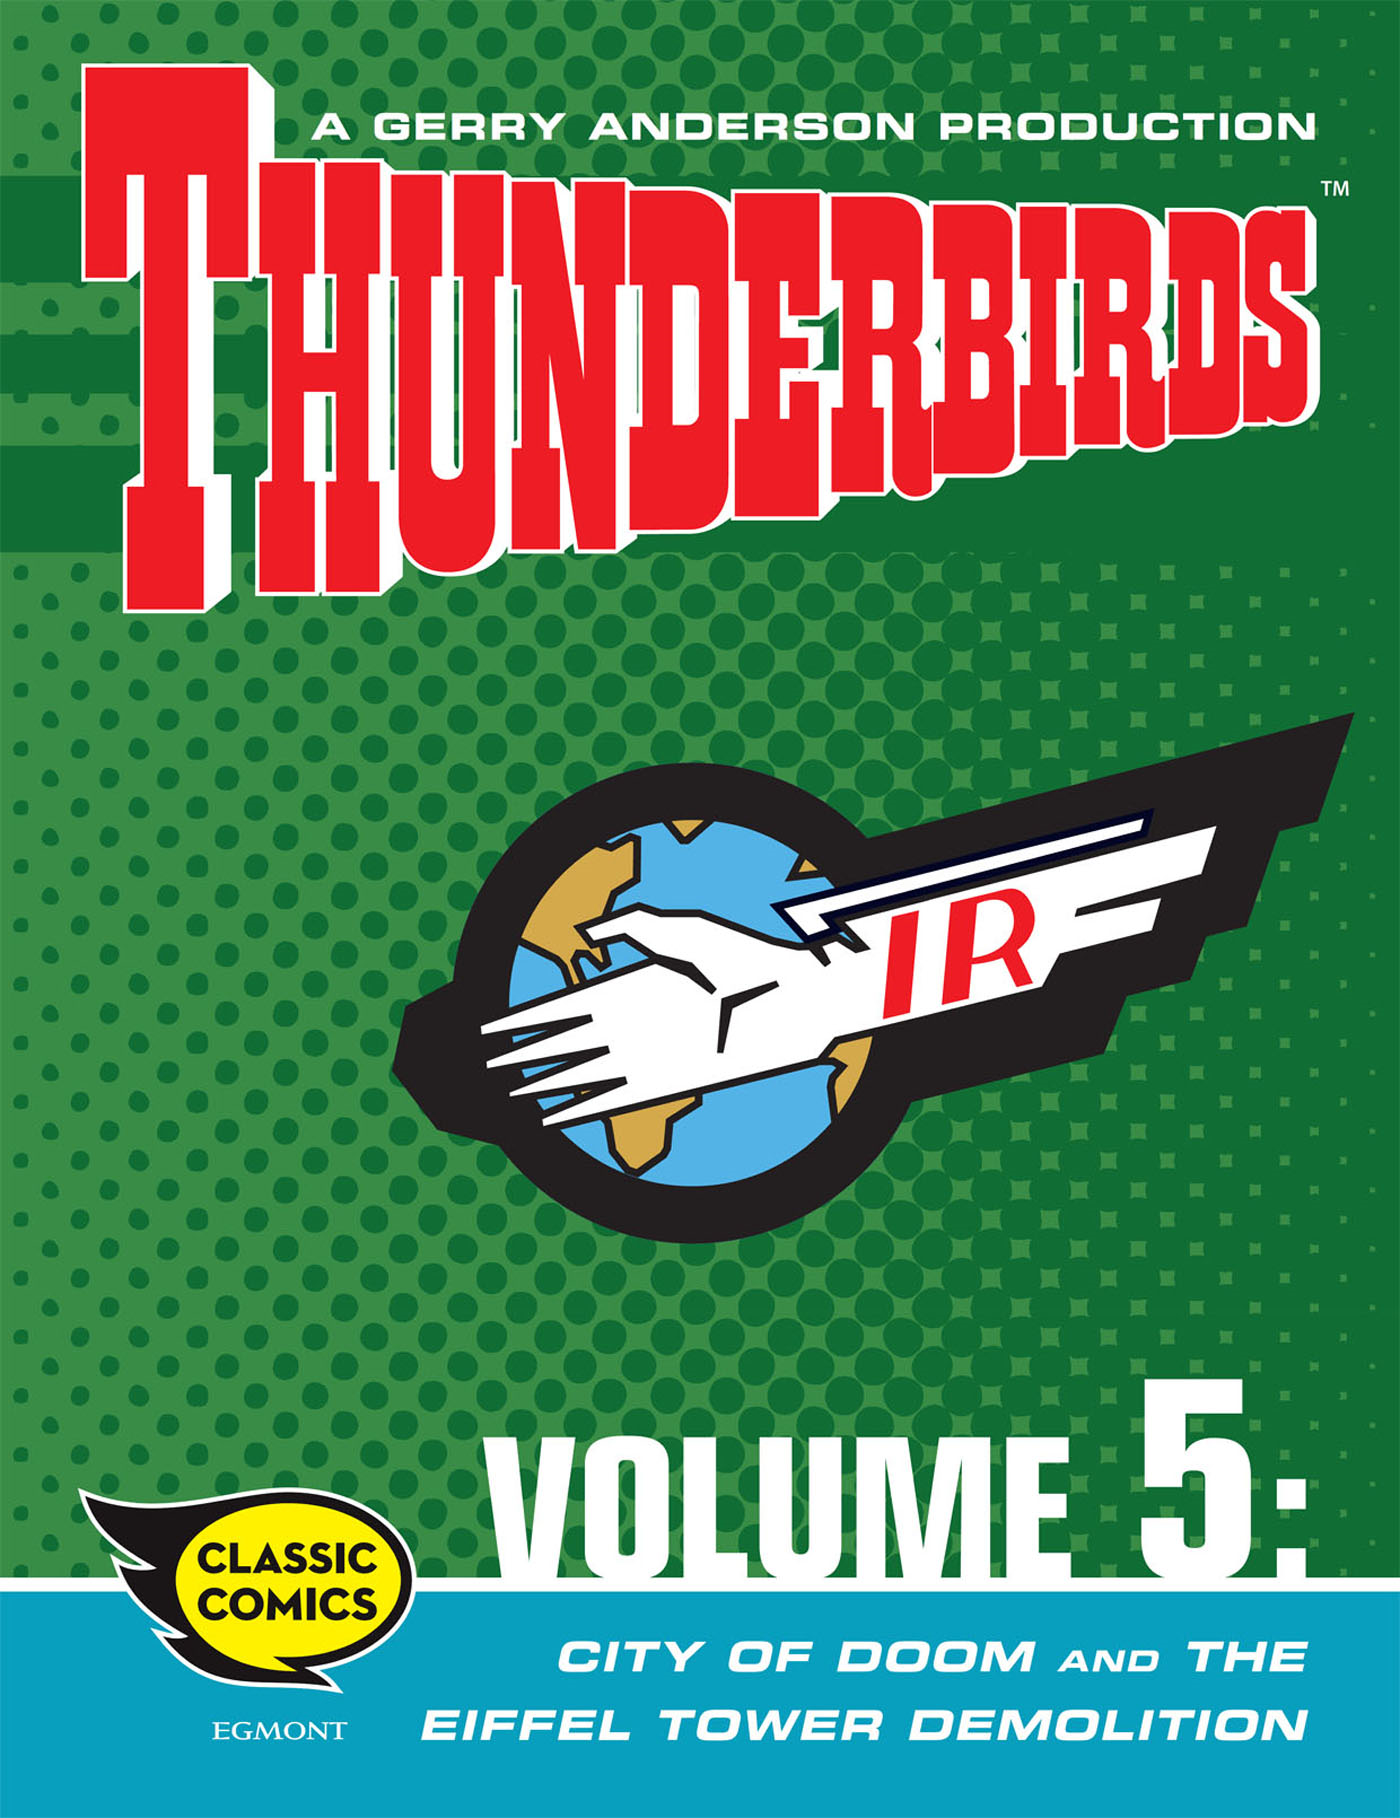 Thunderbirds Comic Volume 5: City of Doom and The Eiffel Tower Demolition